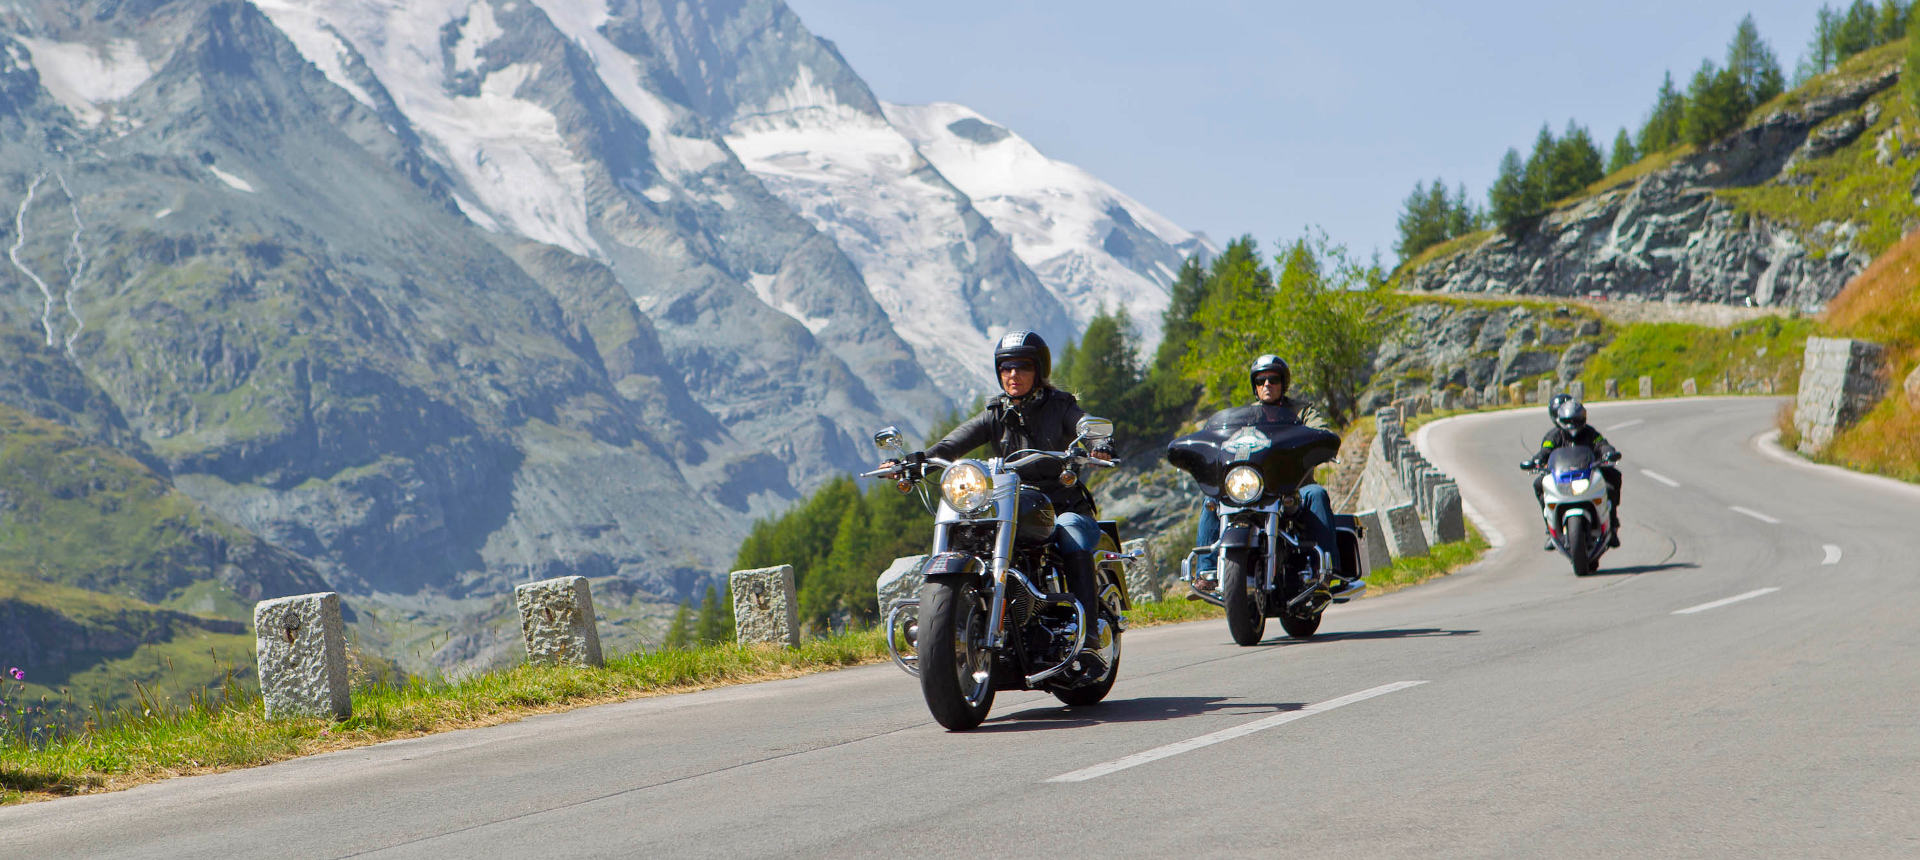 With the Harley on the Grossglockner High Alpine Road